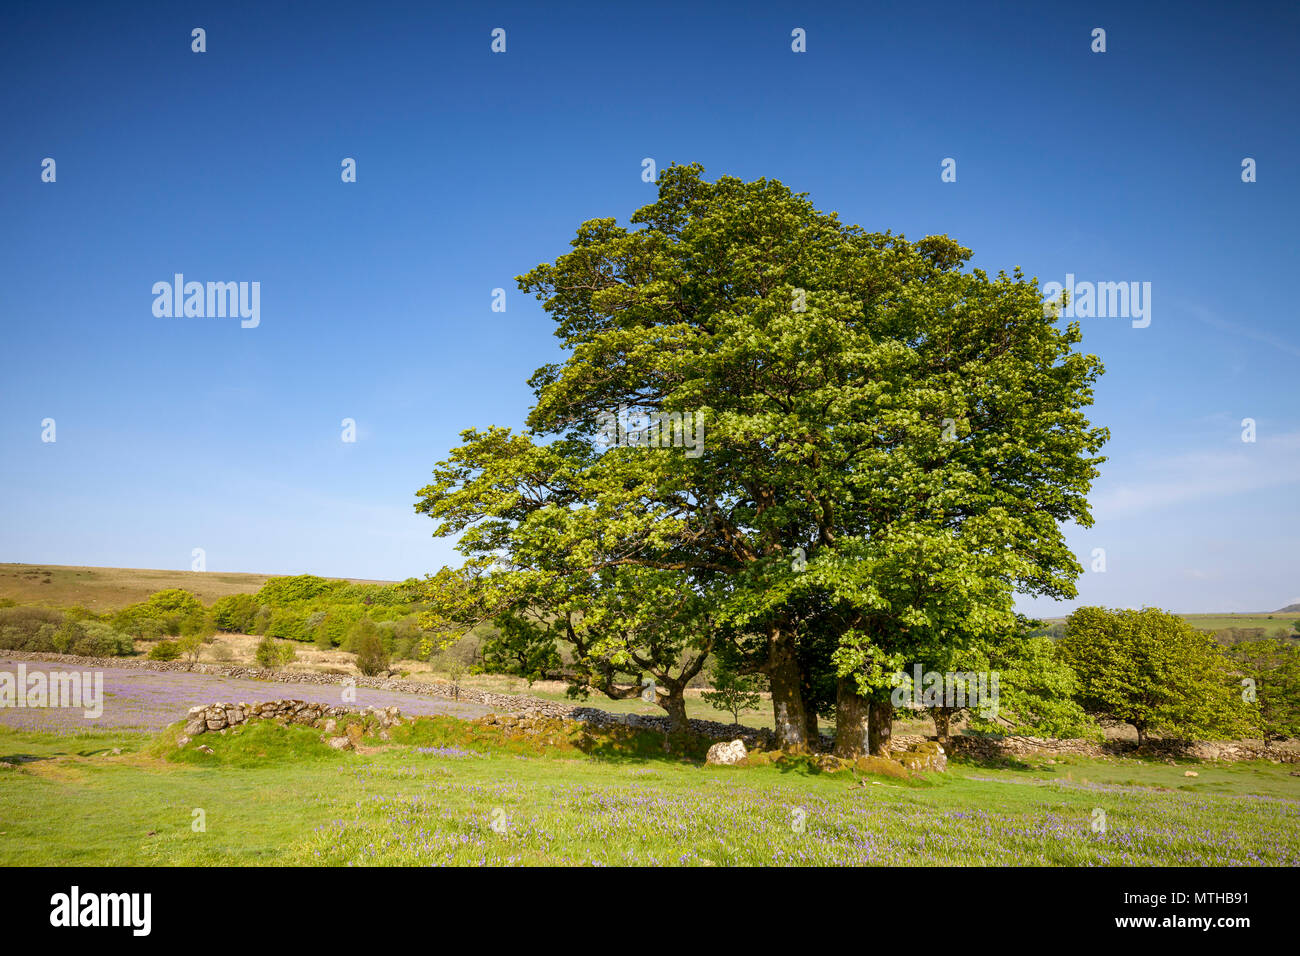 large trees at Emsworthy Mire on Dartmoor National Park on a sunny morning with blue sky. - Stock Image